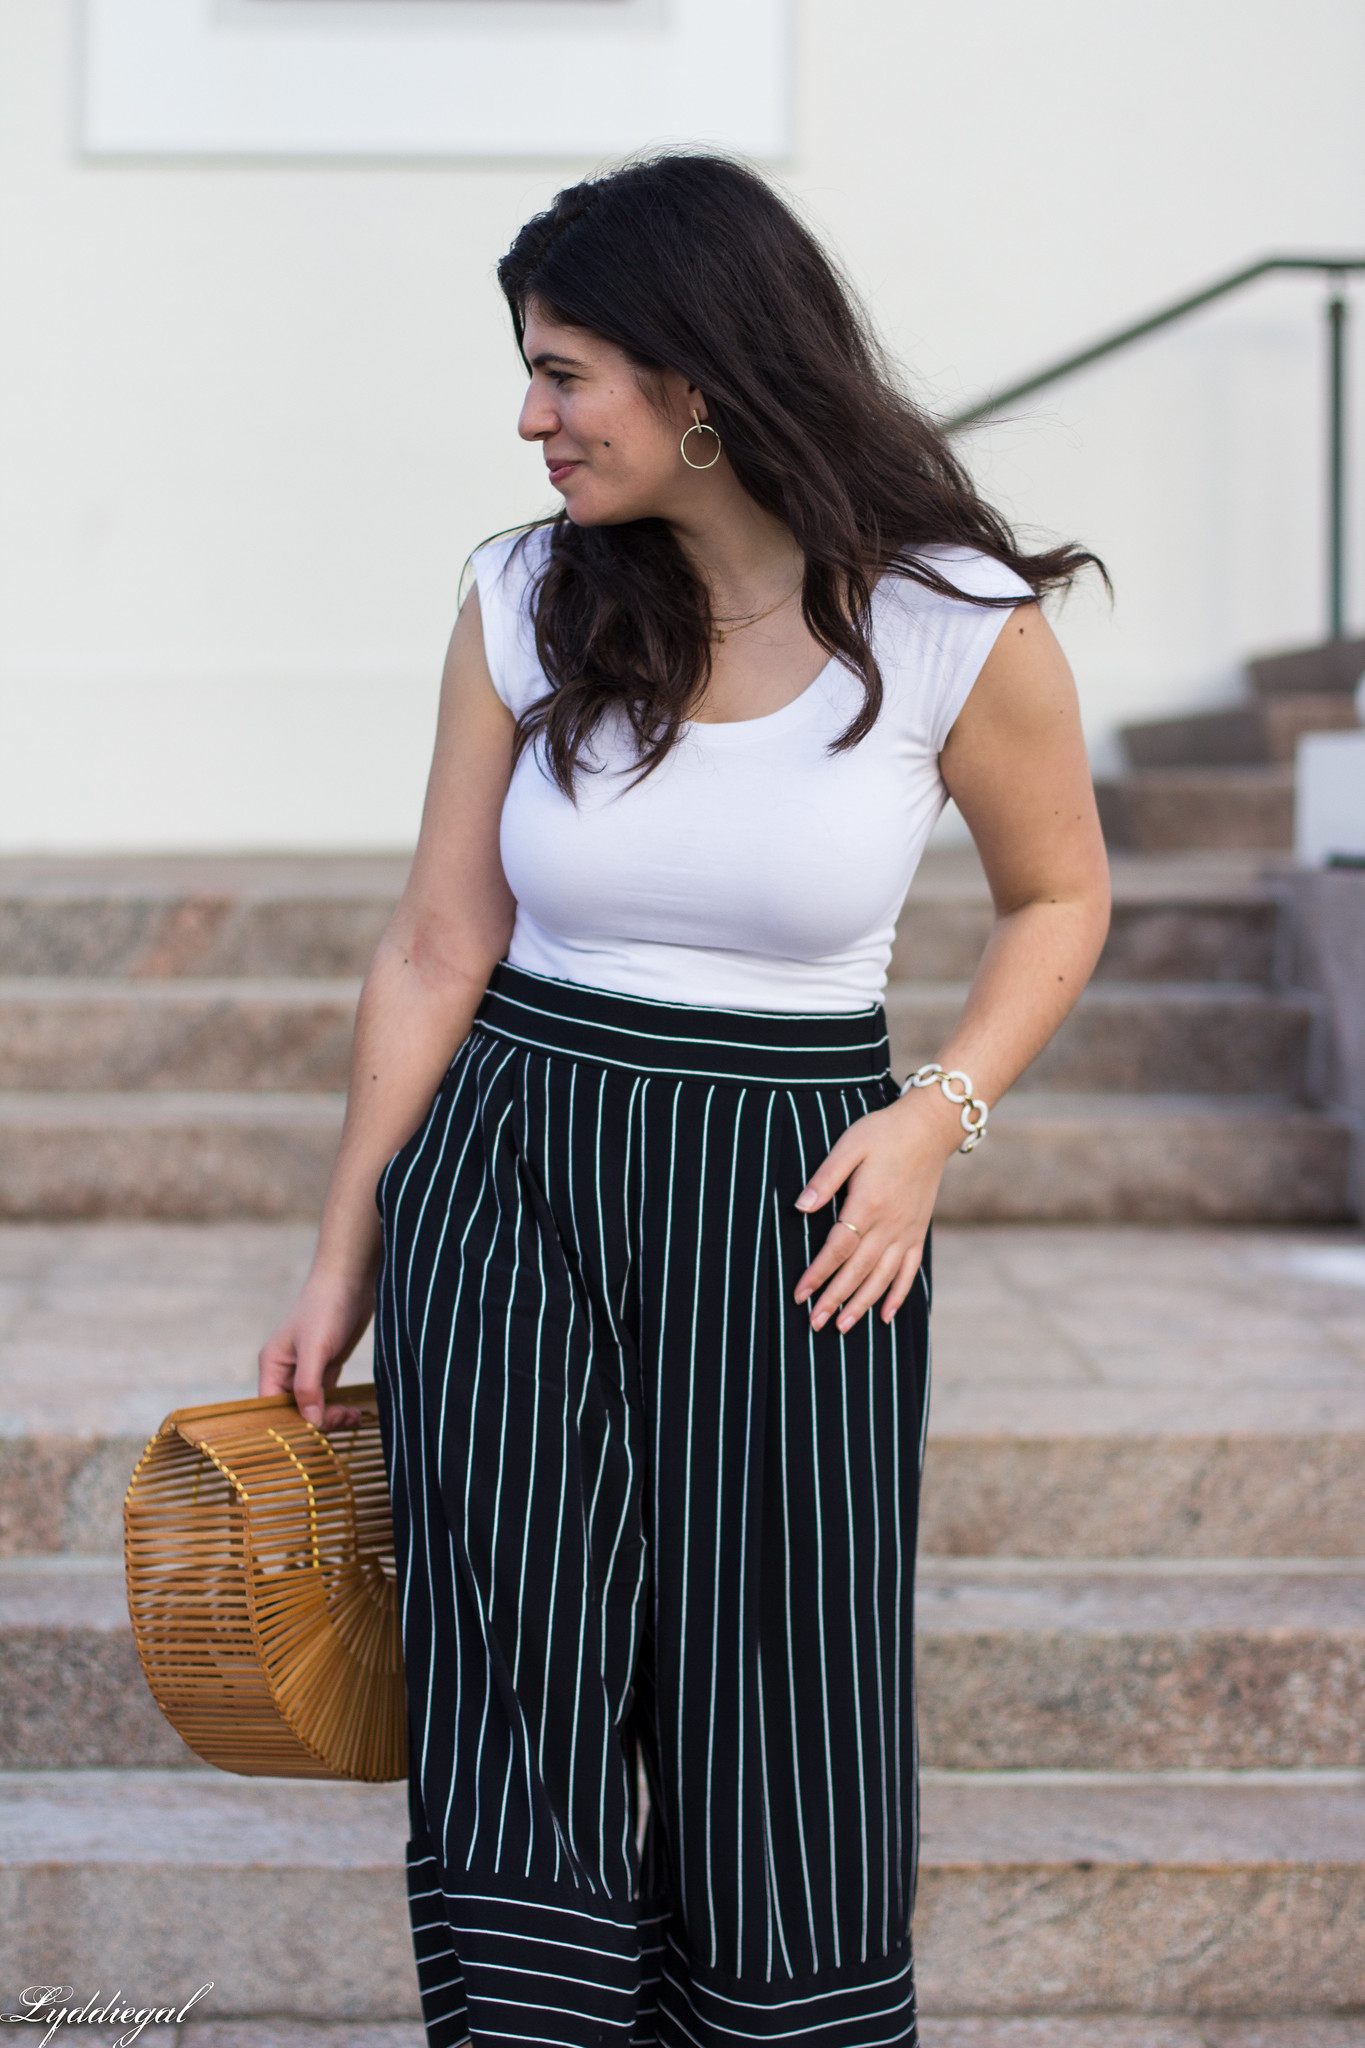 white bodysuit, black and white striped culottes, bamboo bag, black slides-10.jpg